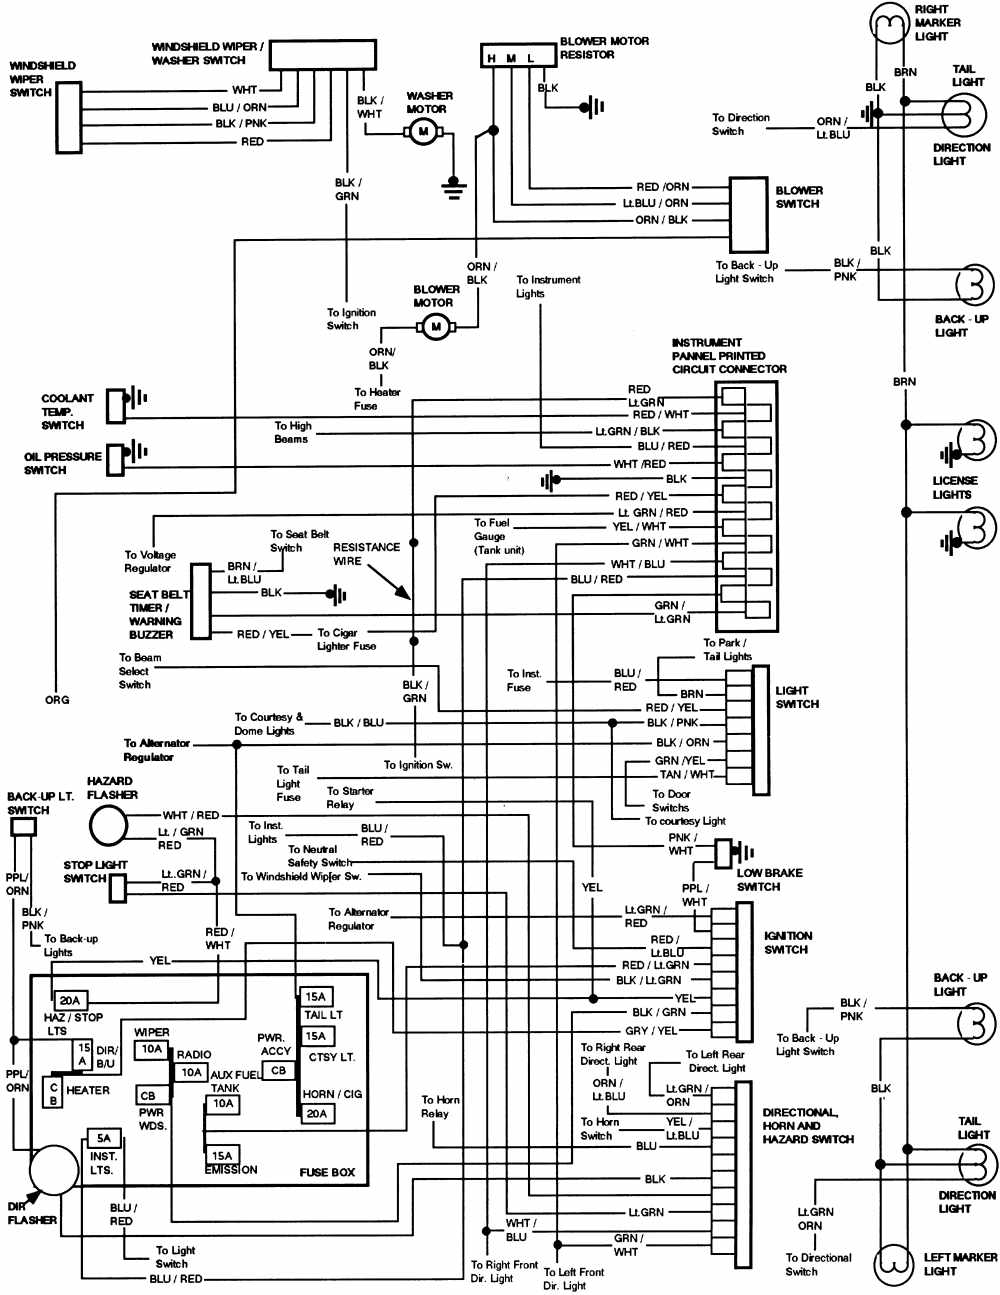 ford bronco 1984 instrument panel wiring diagram all ford escape 2008 fuse block diagram